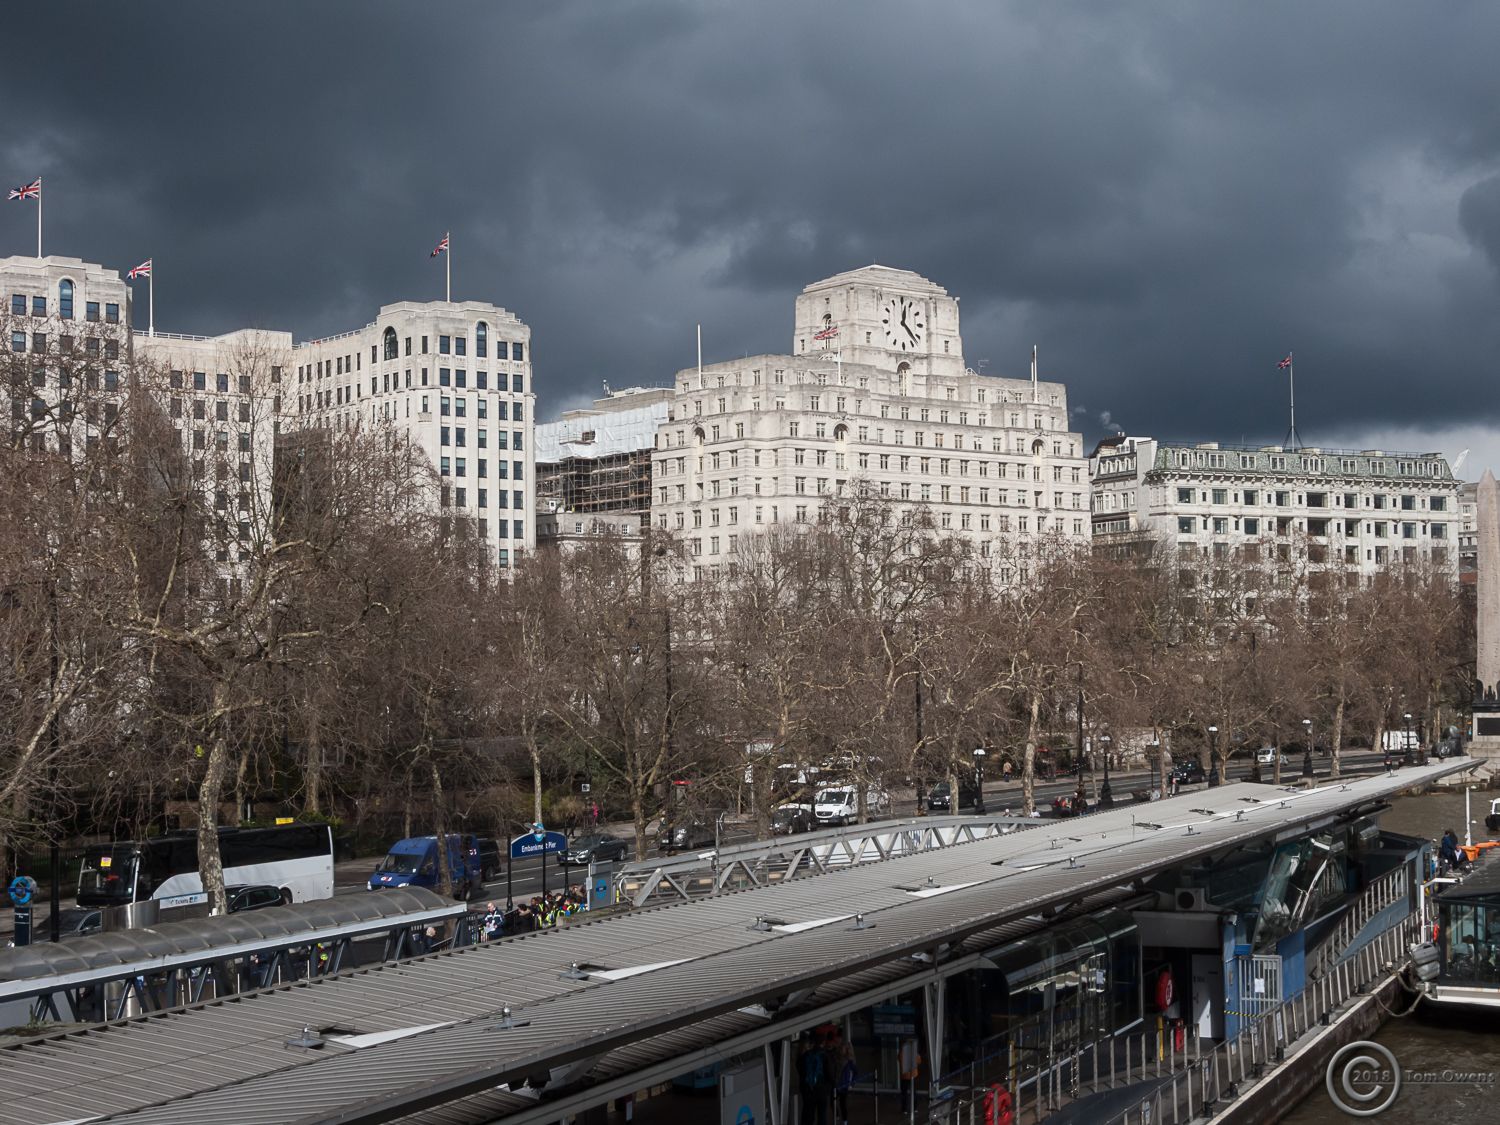 Embankment grey clouds white buildings and union flags